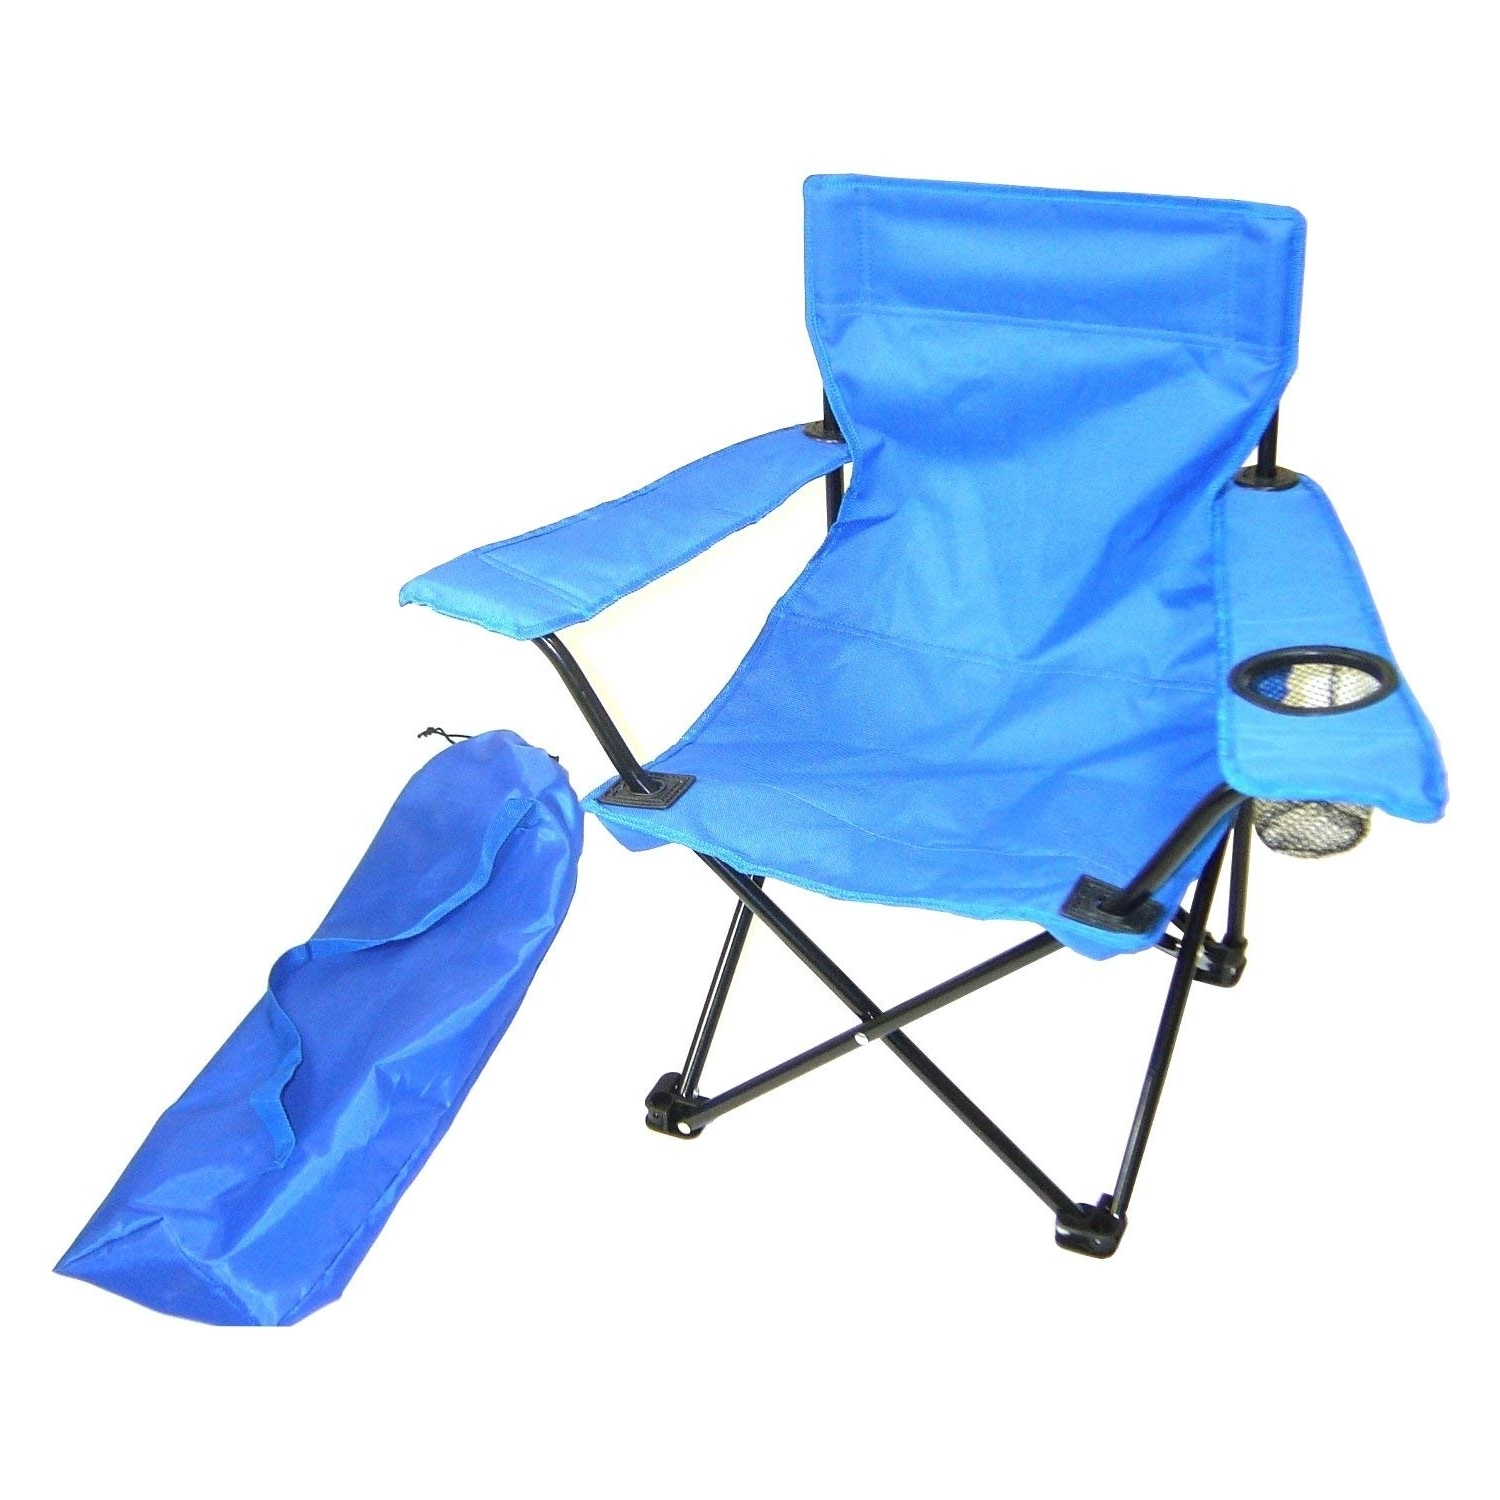 Alexa Firecracker Side Chairs Pertaining To Famous Amazon: Redmon For Kids Kids Folding Camp Chair, Blue: Baby (Gallery 20 of 20)